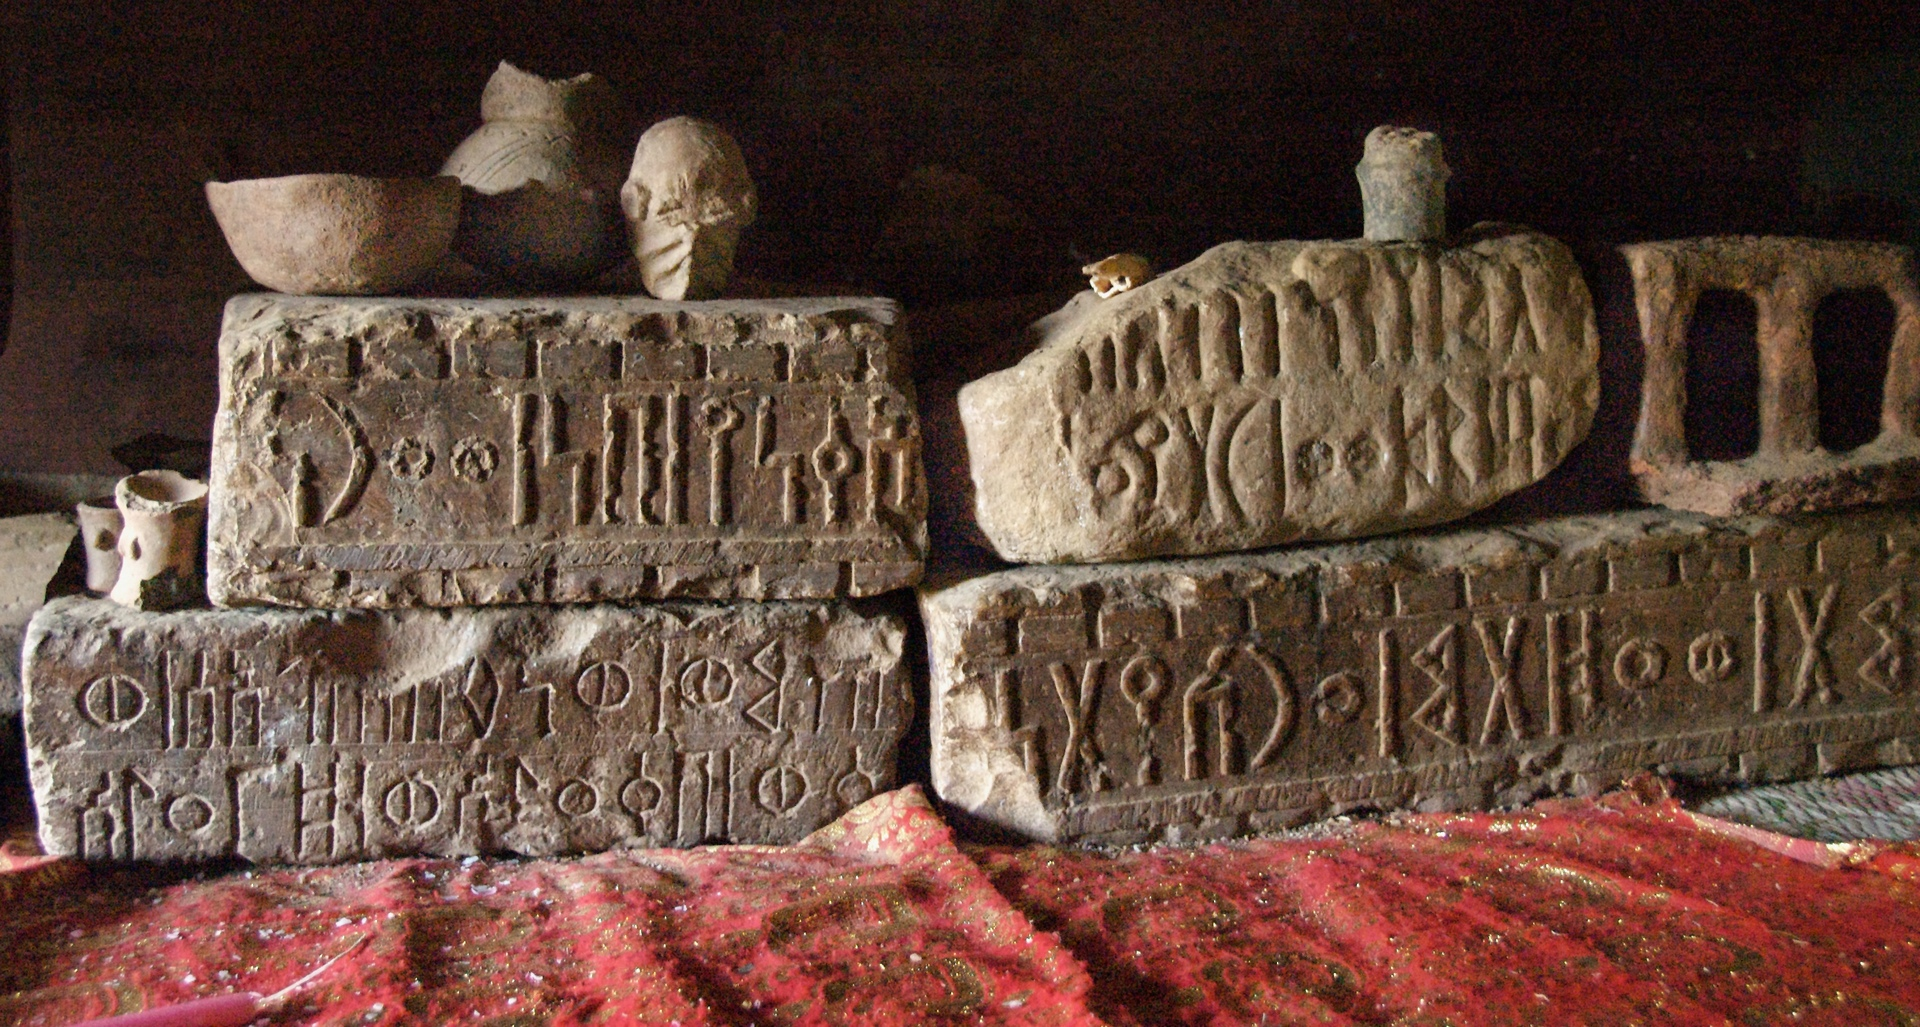 YEHA (Ethiopia's First Pre-Axumite Capital)